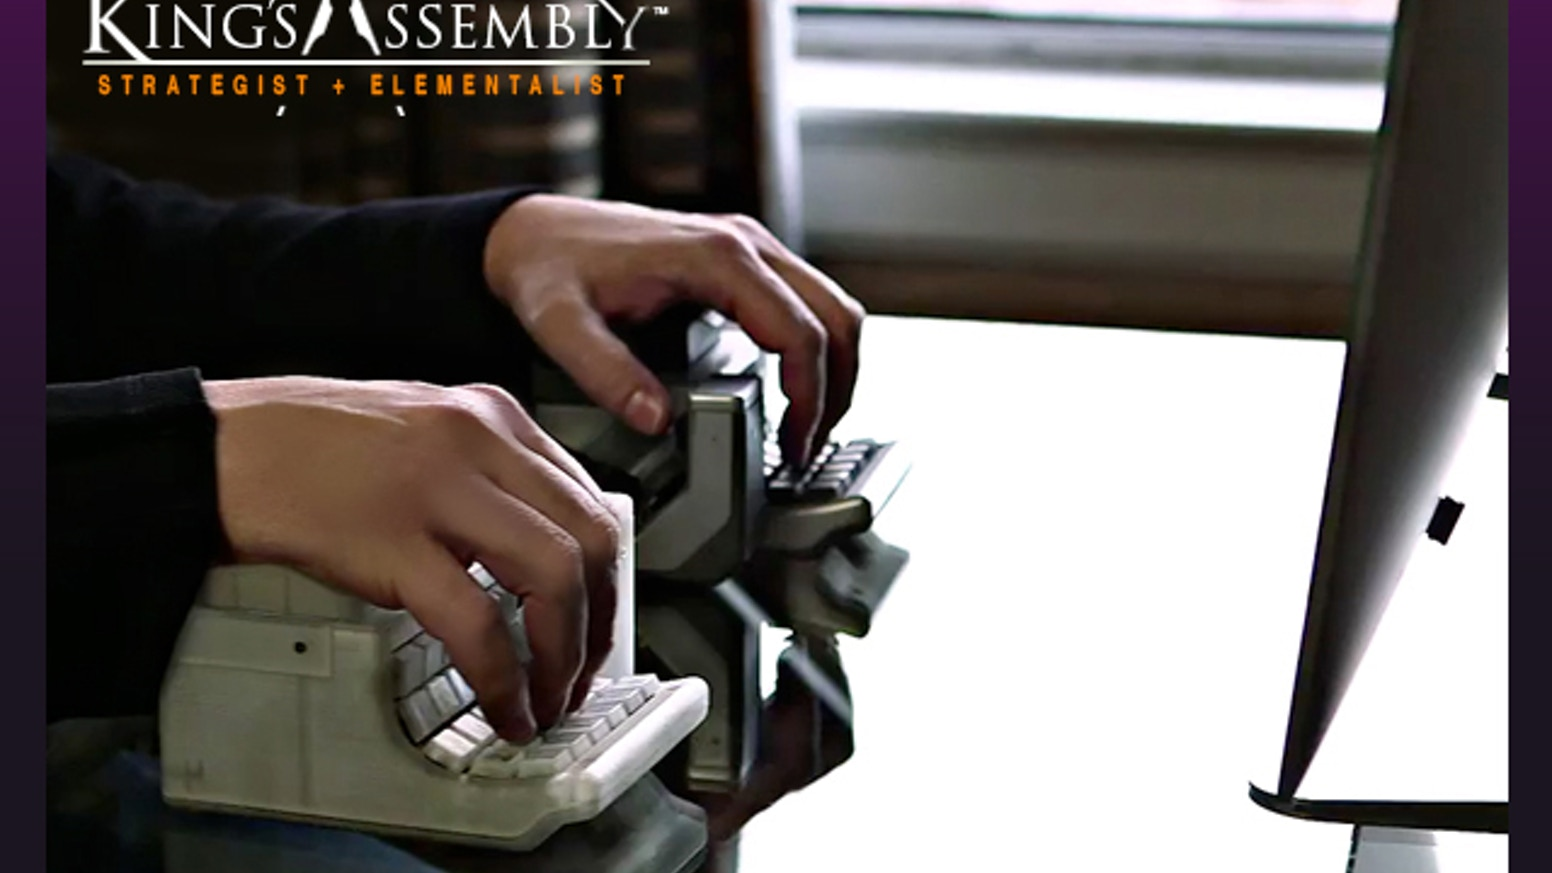 King's Assembly - A Computer Mouse Full Of Awesome by Solid